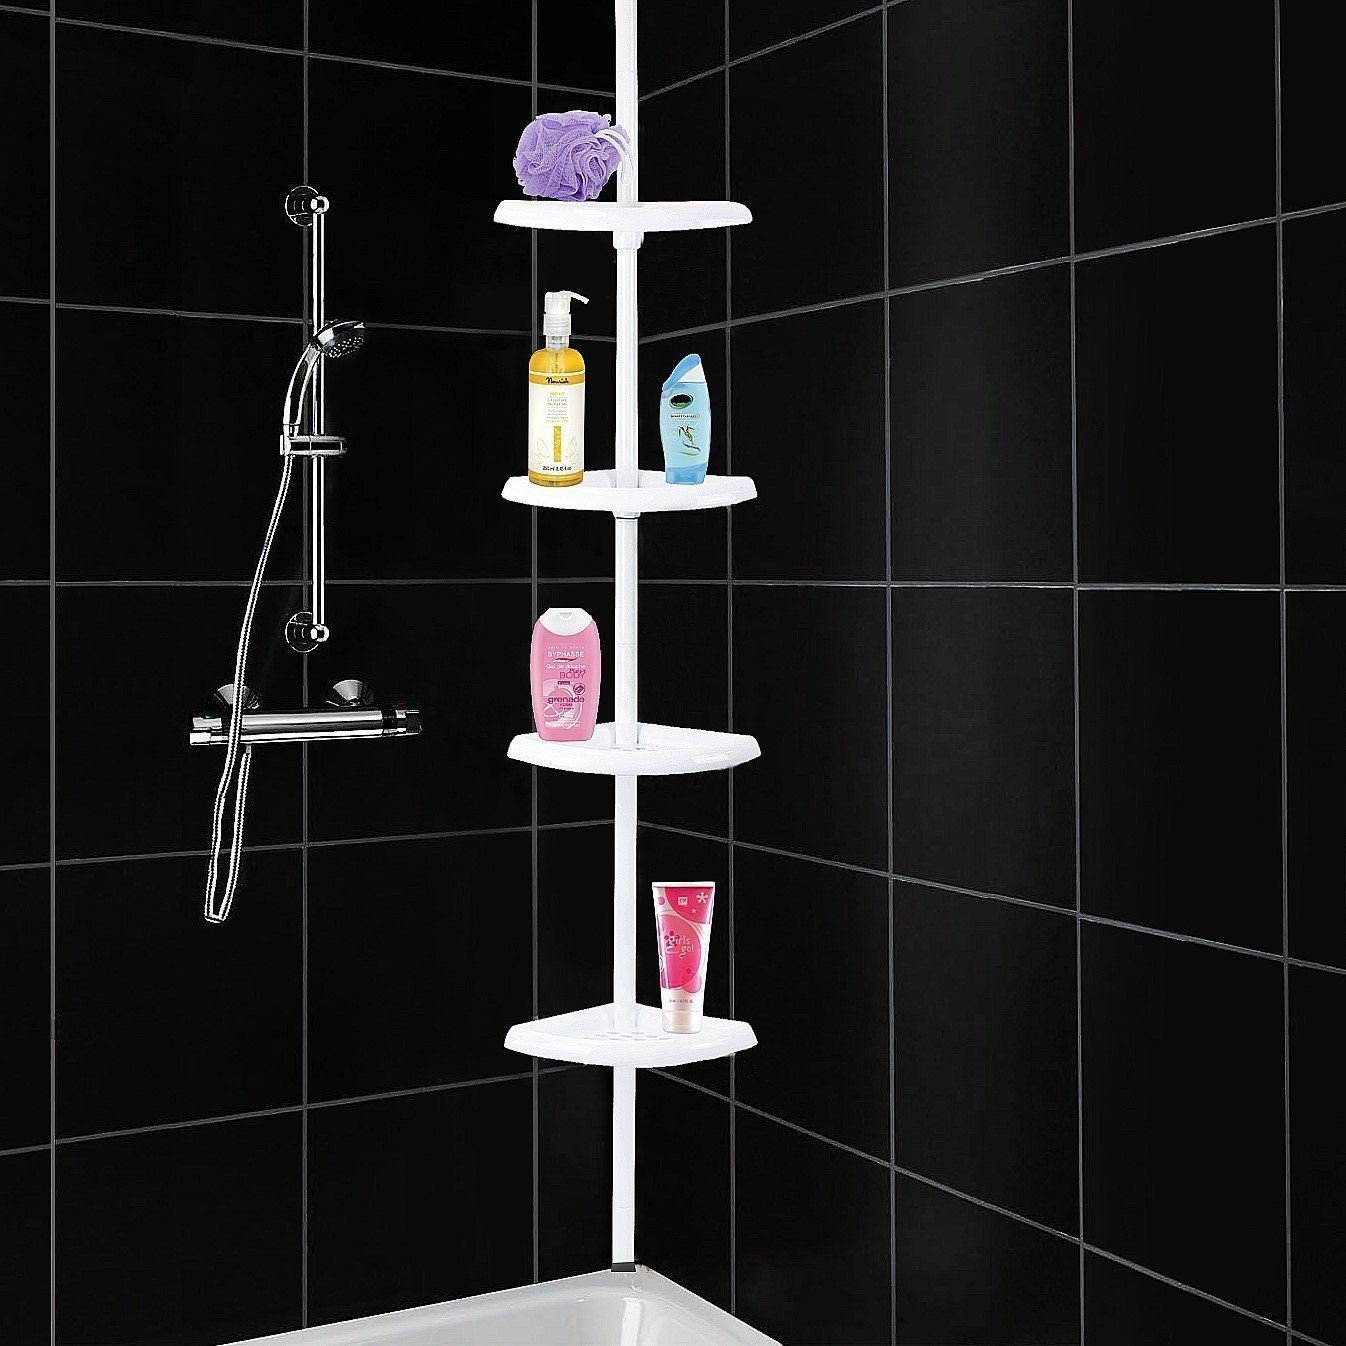 4 Tier Shelf Adjustable Corner Shower Caddy Telescopic Bathroom Shelf Toiletry Organiser Rust Free Tension Fitting From Ceiling to Floor/Bath ASAB - White